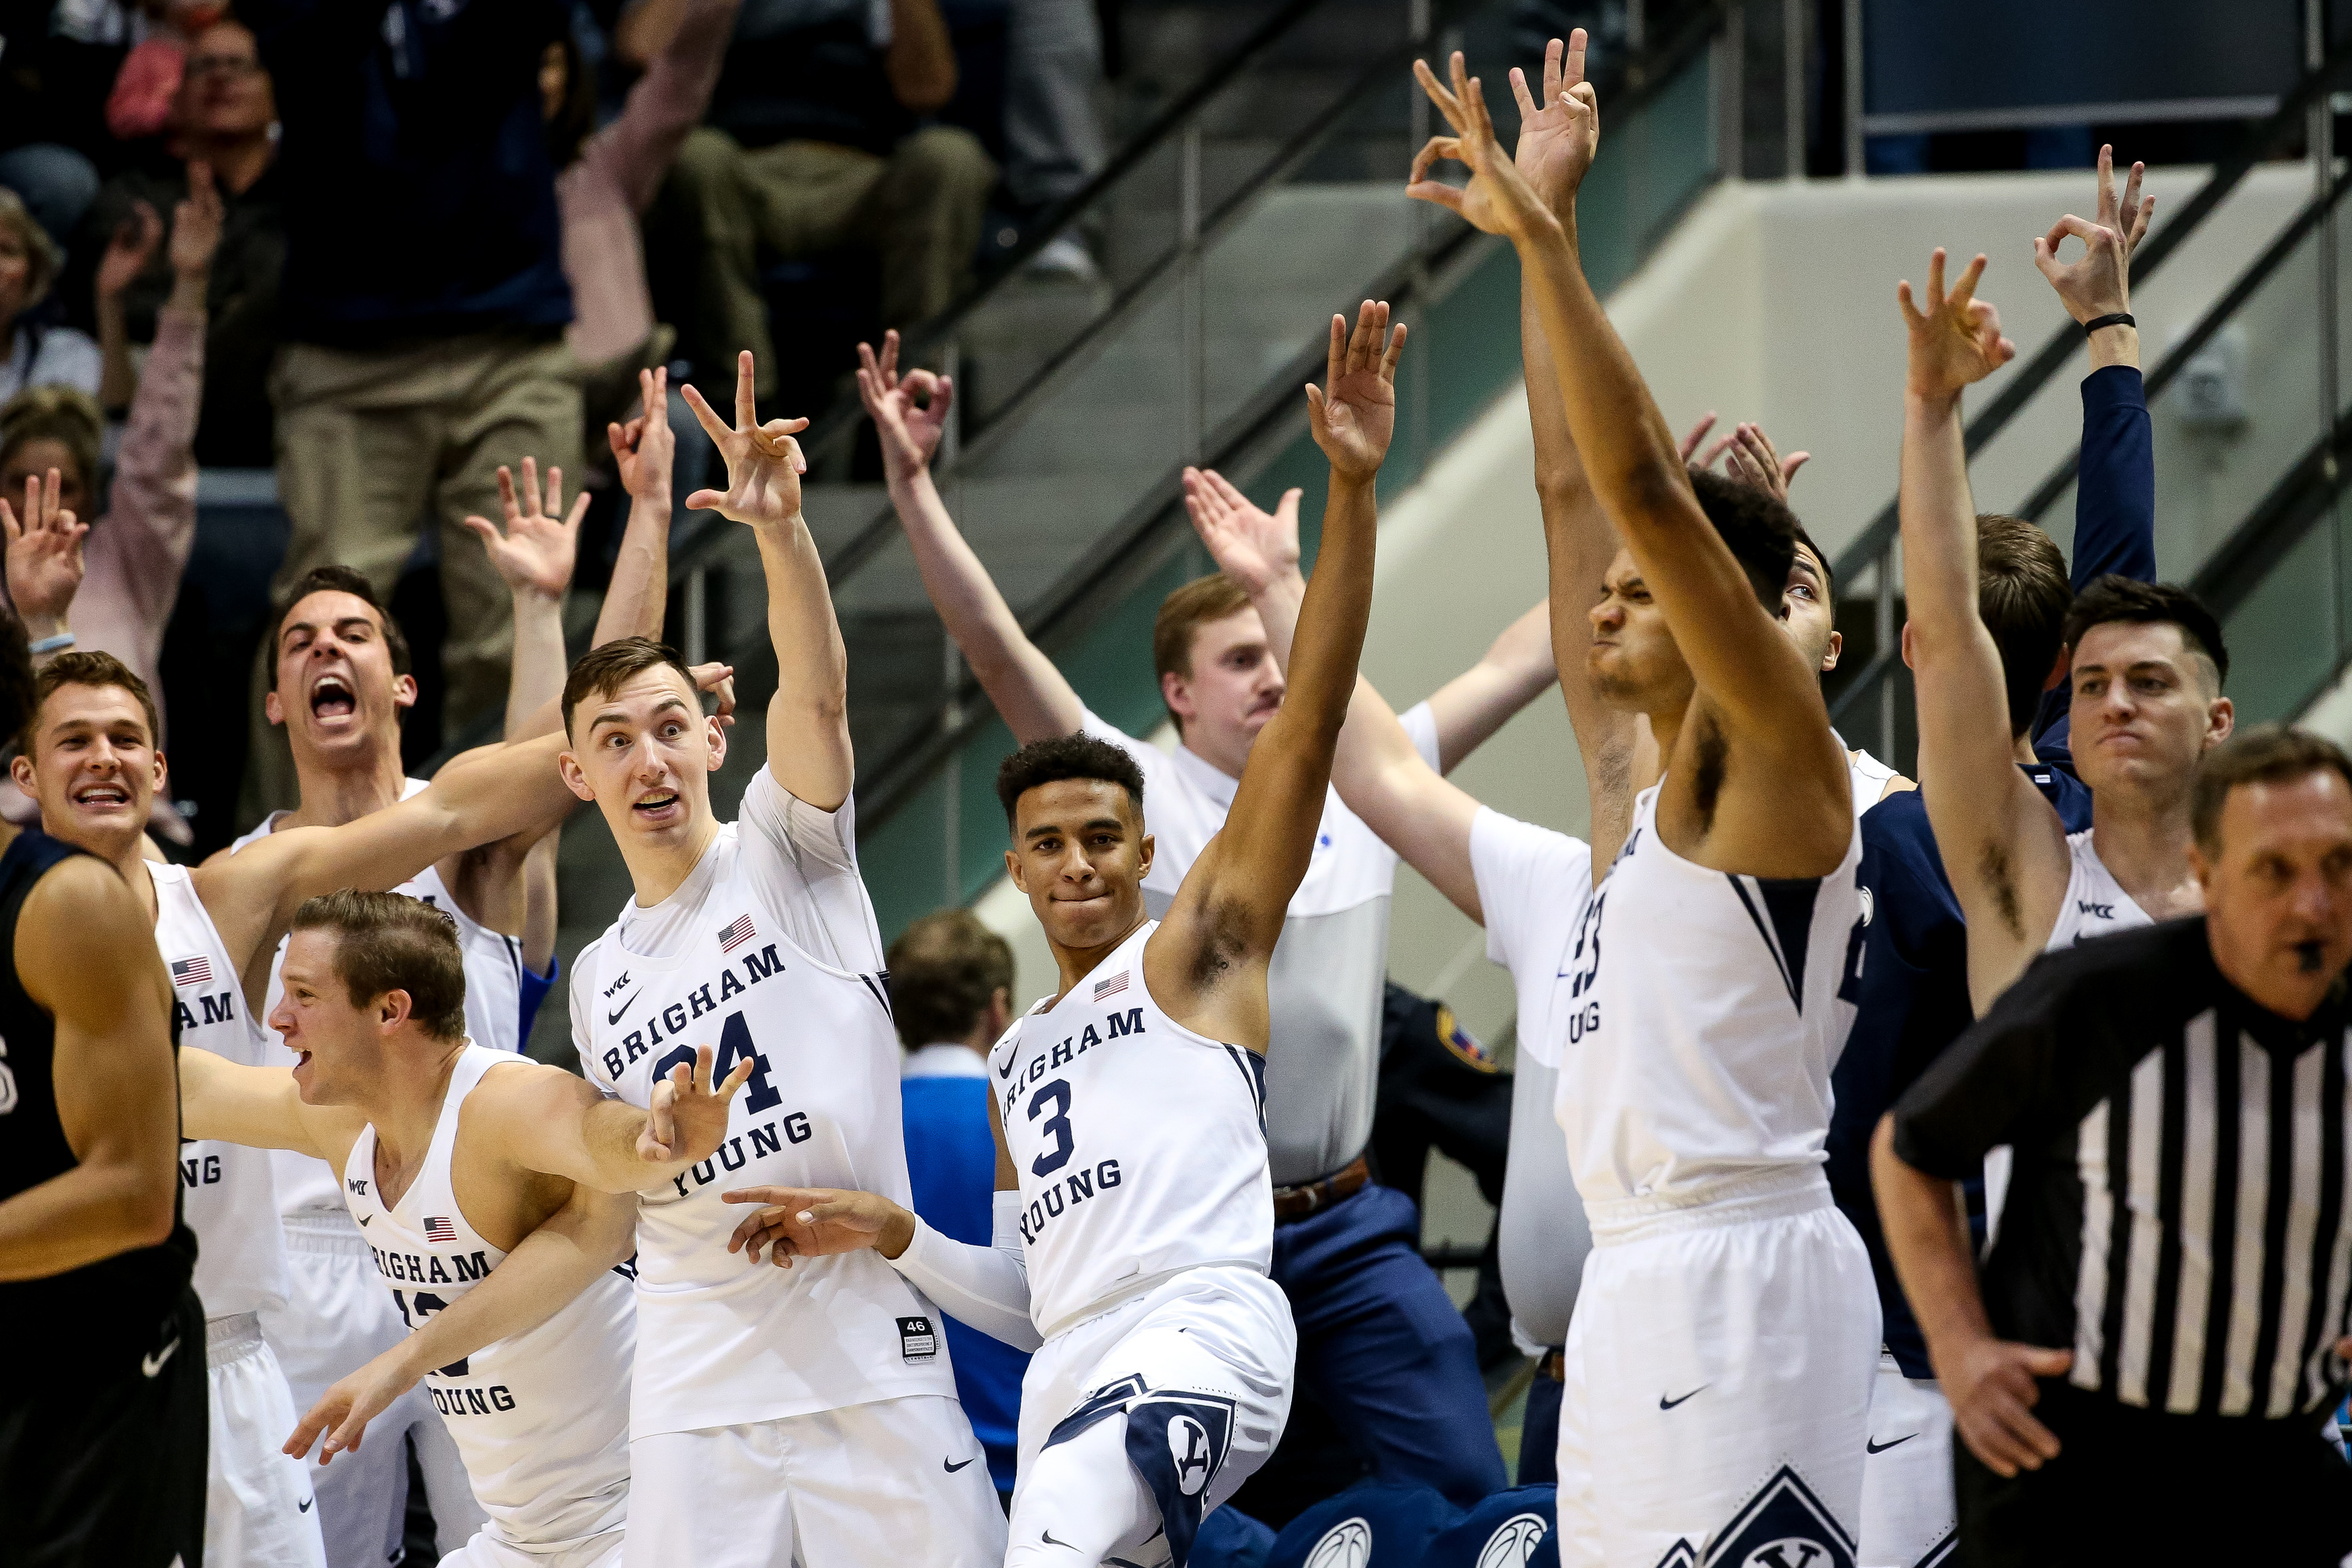 Brigham Young Cougars players celebrate a 3-pointer during the game against the Gonzaga Bulldogs at the Marriott Center in Provo on Saturday, Feb. 22, 2020.